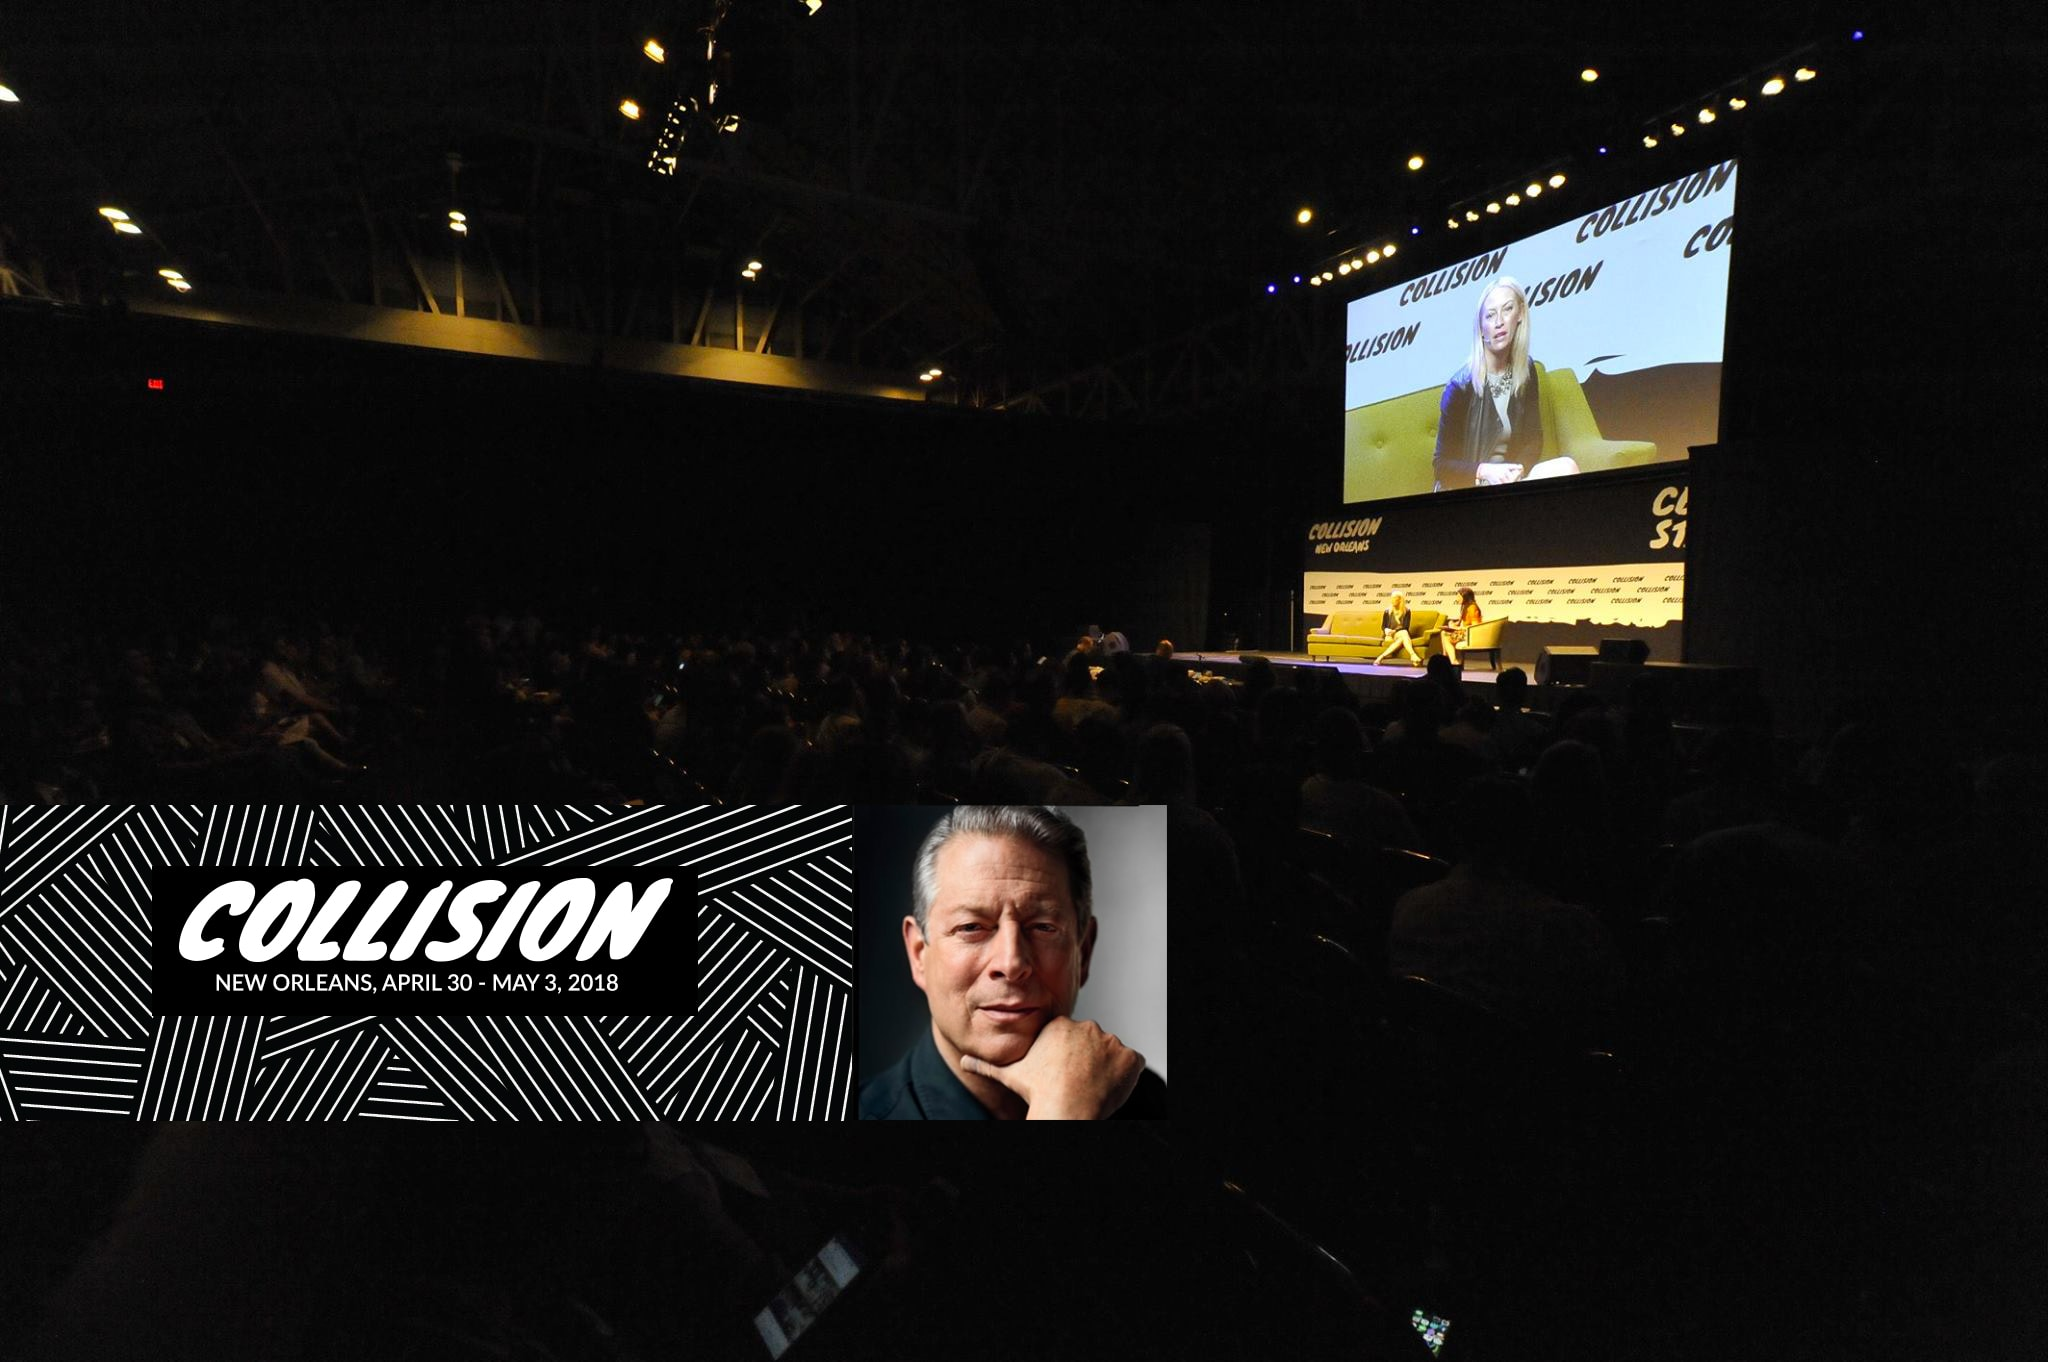 Al Gore set to speak at Collision 2018 in New Orleans this May